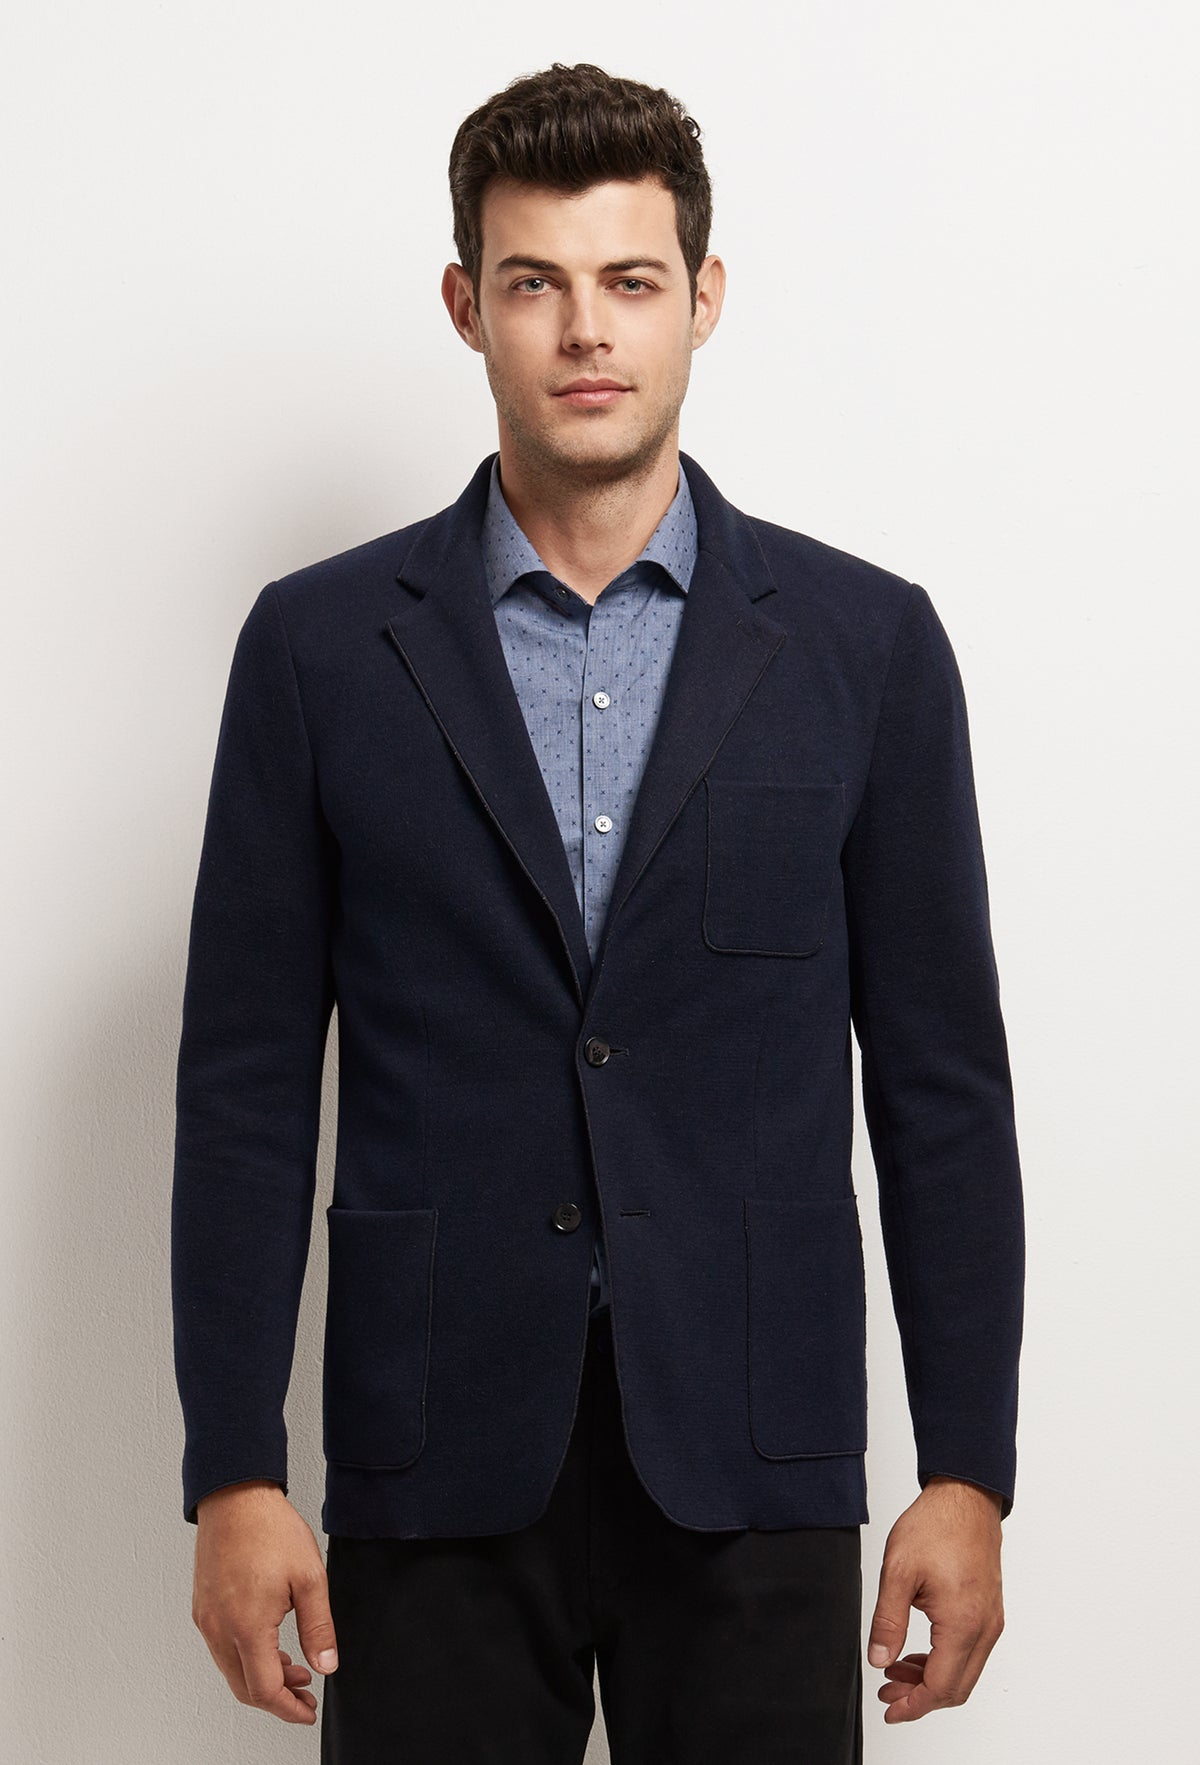 ZACHARY-PRELL-Plymouth-Sport CoatsModern-Menswear-New-Dress-Code